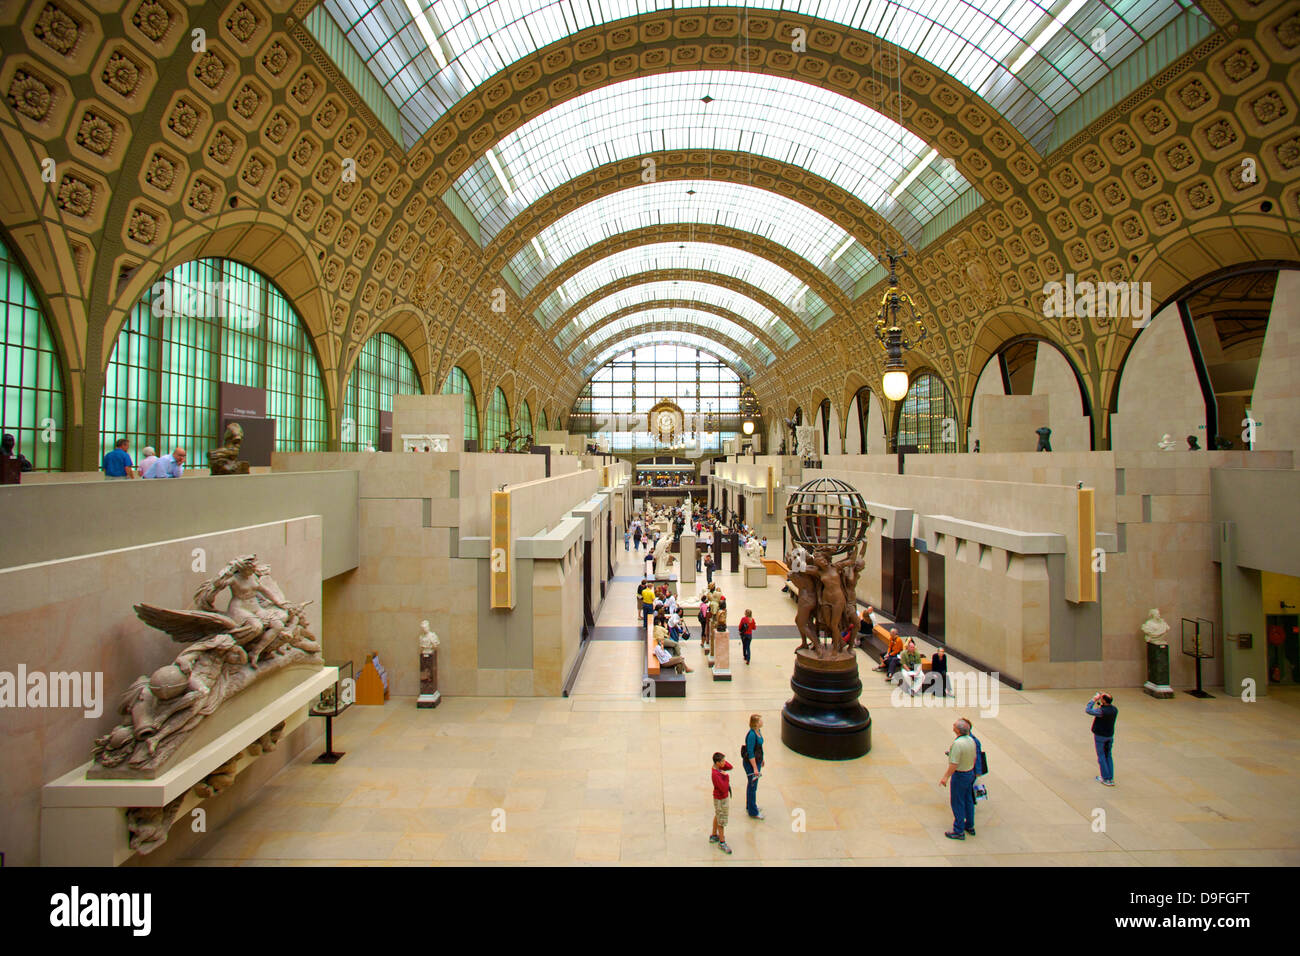 Elevated view of the interior of the Musee d'Orsay, Paris, France - Stock Image